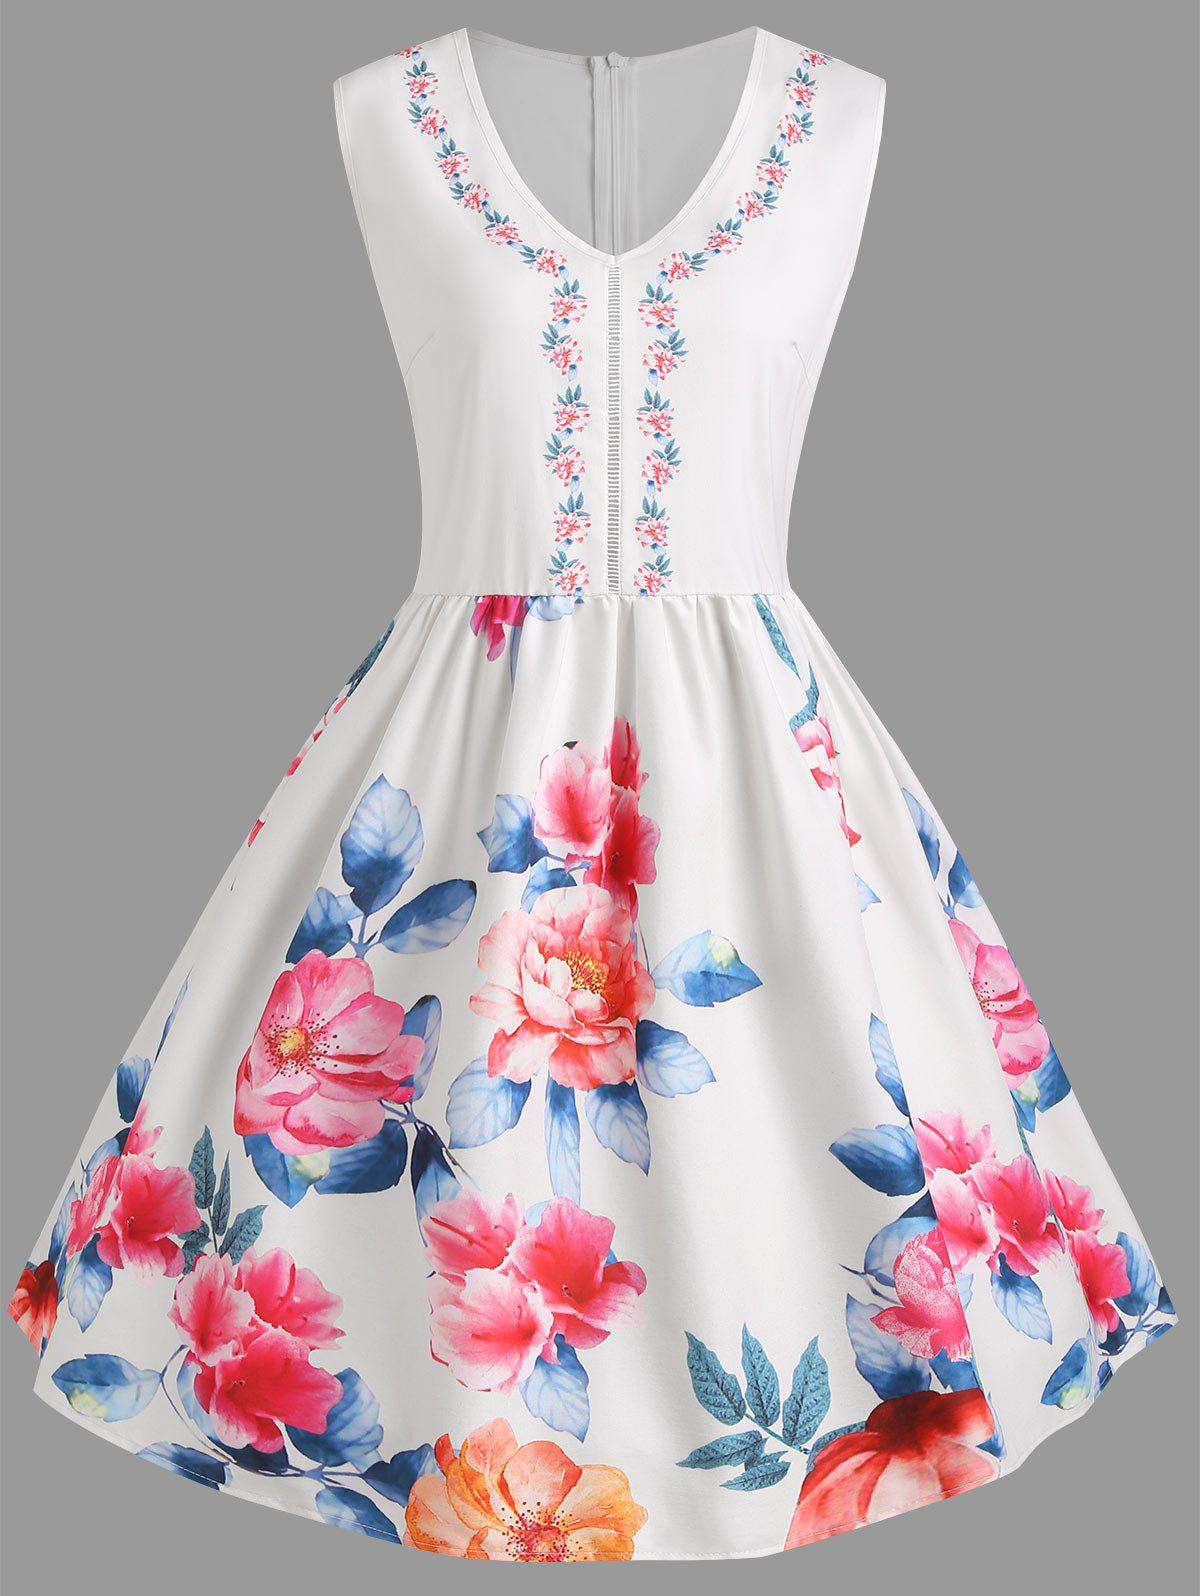 Chic Plus Size Flower Print Sleeveless Dress